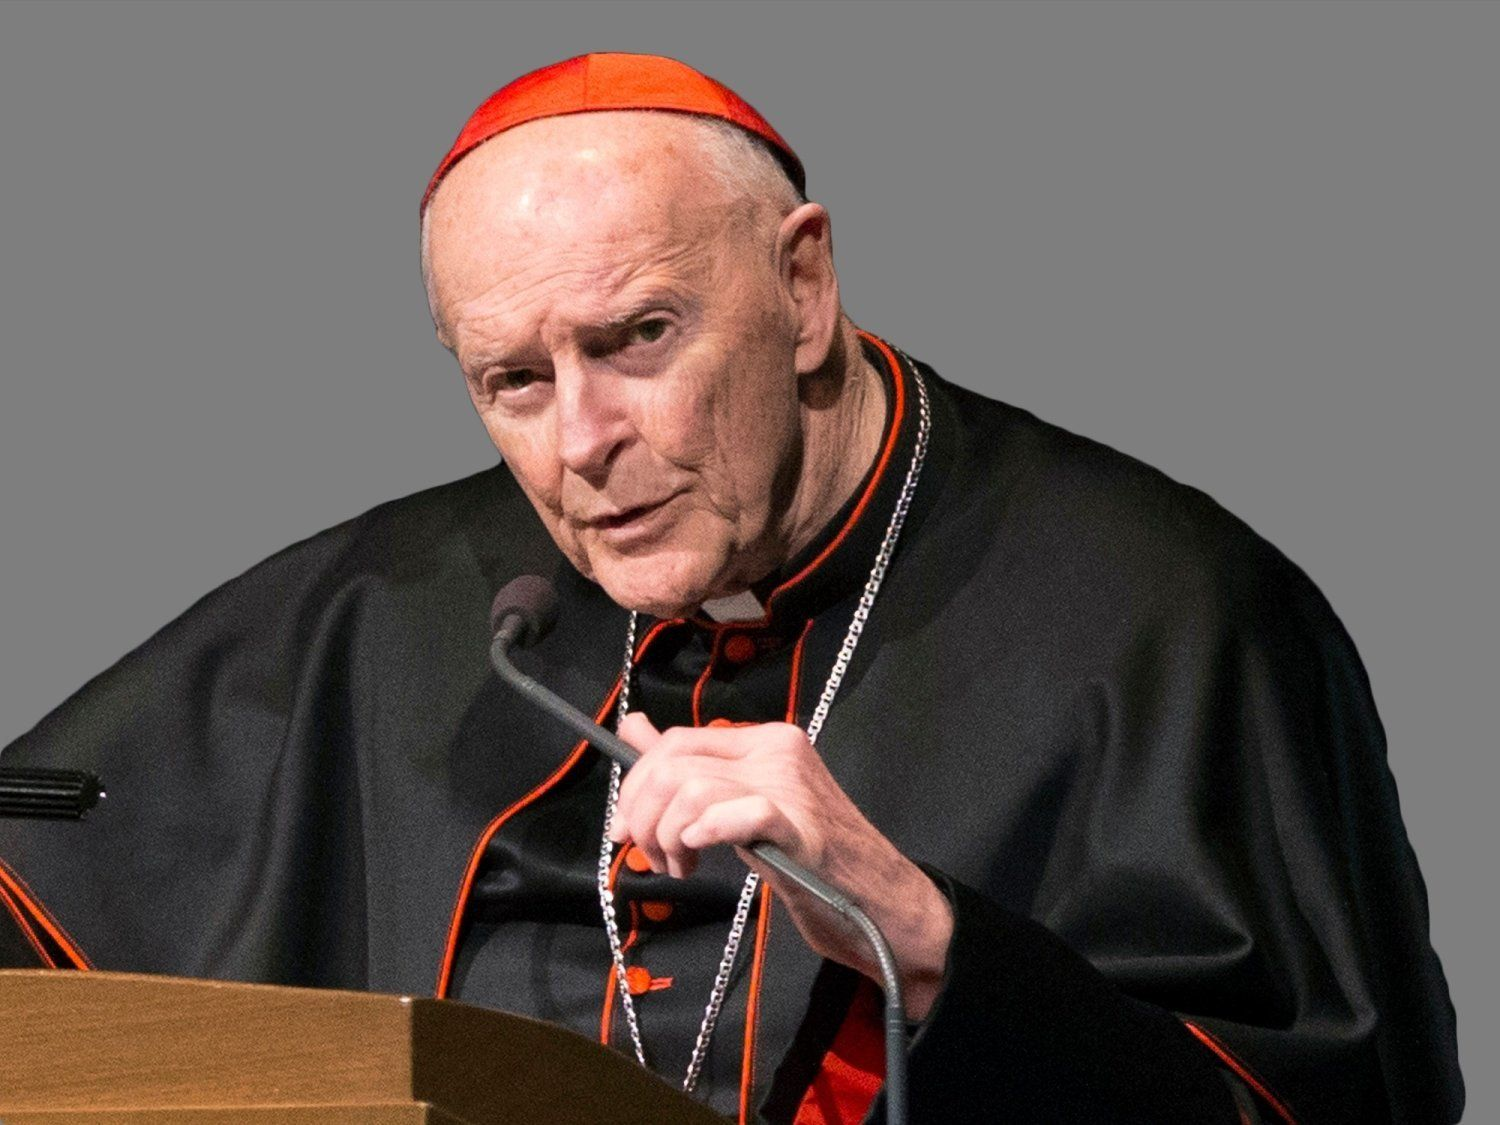 Theodore Edgar McCarrick headshot, retired Catholic Archbishop of Washington DC, graphic element on gray